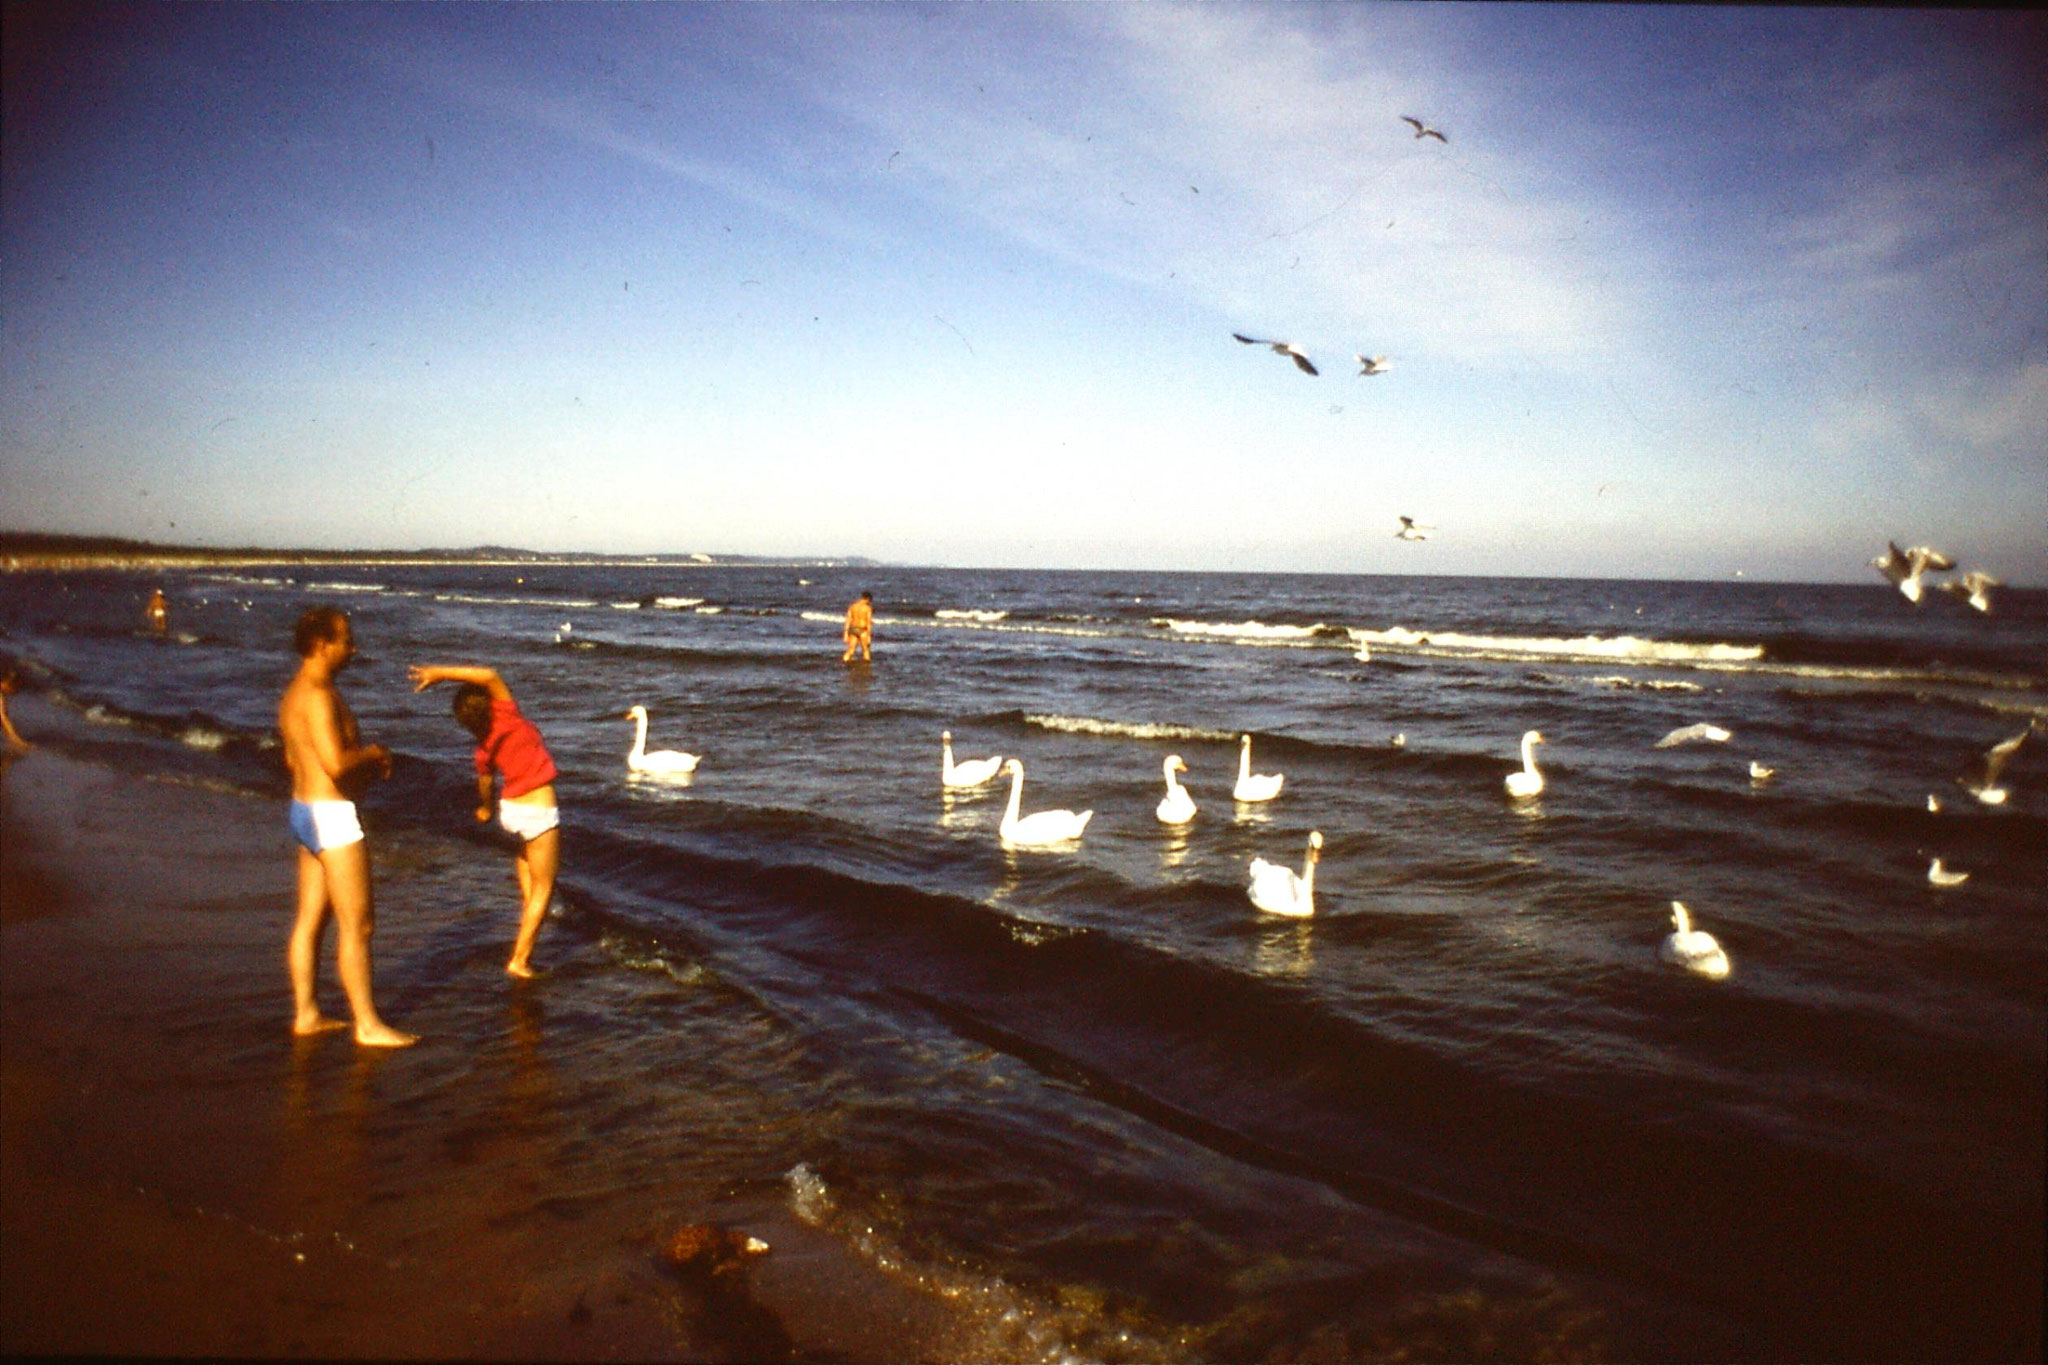 30/8/1988: 13: Swinoujscie, swans on beach